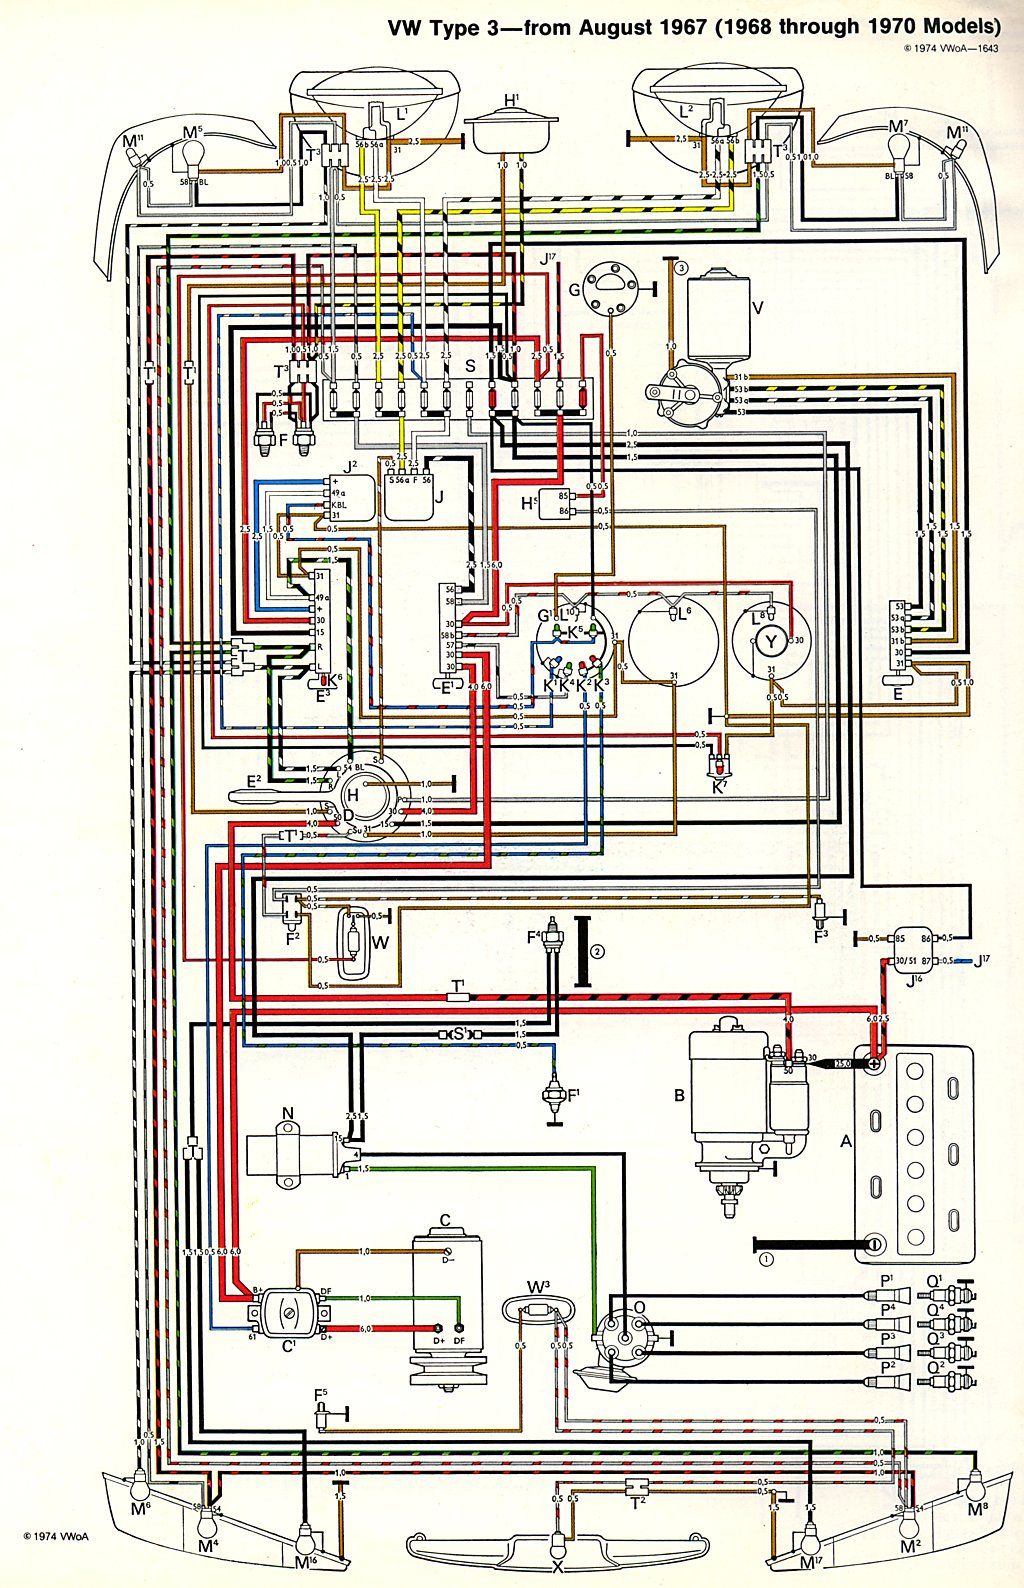 3 Wire Schematics | Wiring Diagram Automotive  Pole Circuit Breaker Wiring Diagram on circuit breaker frame, circuit breaker sensor, circuit breaker adjustment, circuit breaker operation, circuit breaker electrical, electrical service panel diagram, circuit breaker index, circuit breaker manual, circuit breaker schematic, circuit breaker tutorial, circuit block diagram, circuit breaker parts diagram, circuit breaker tools, circuit breaker controls, circuit breaker distributor, circuit breaker thermostat, circuit design, circuit breakers types, circuit breakers product, circuit breaker switch,